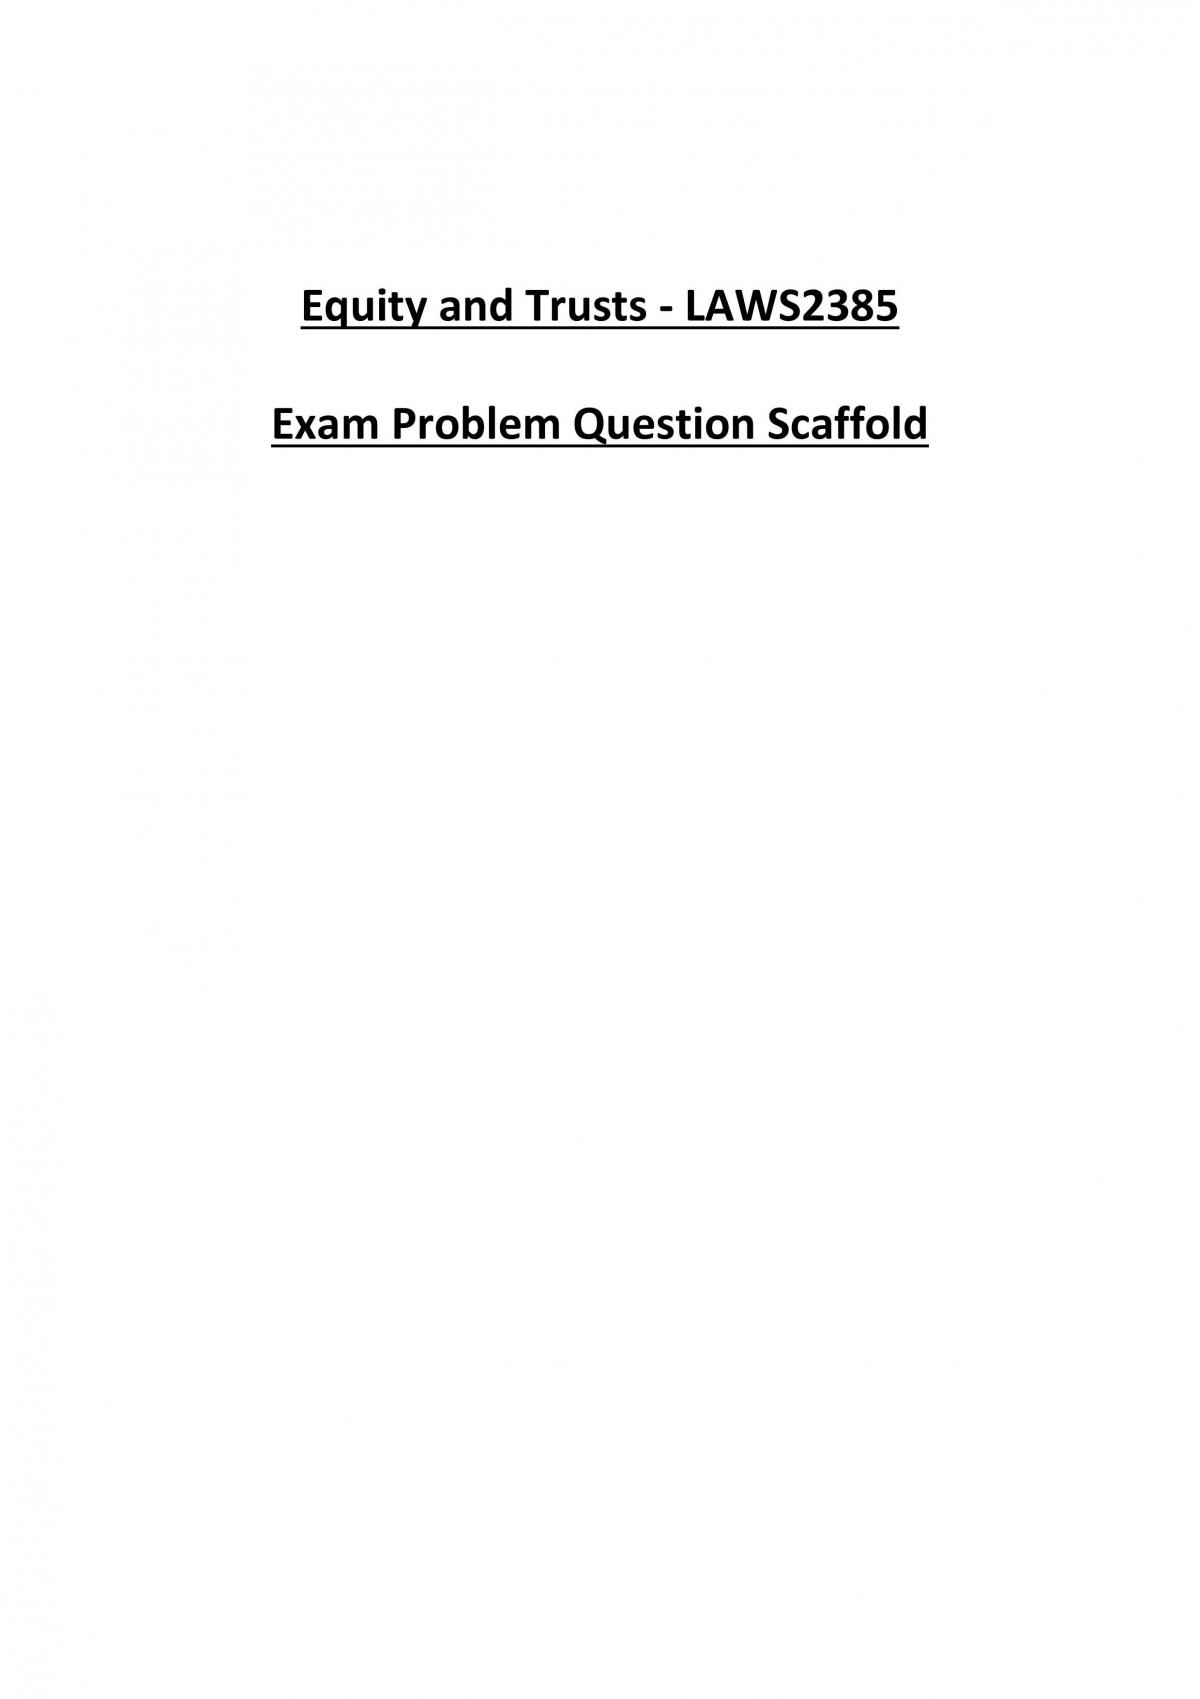 Equity and Trusts HD Exam Notes - Page 1